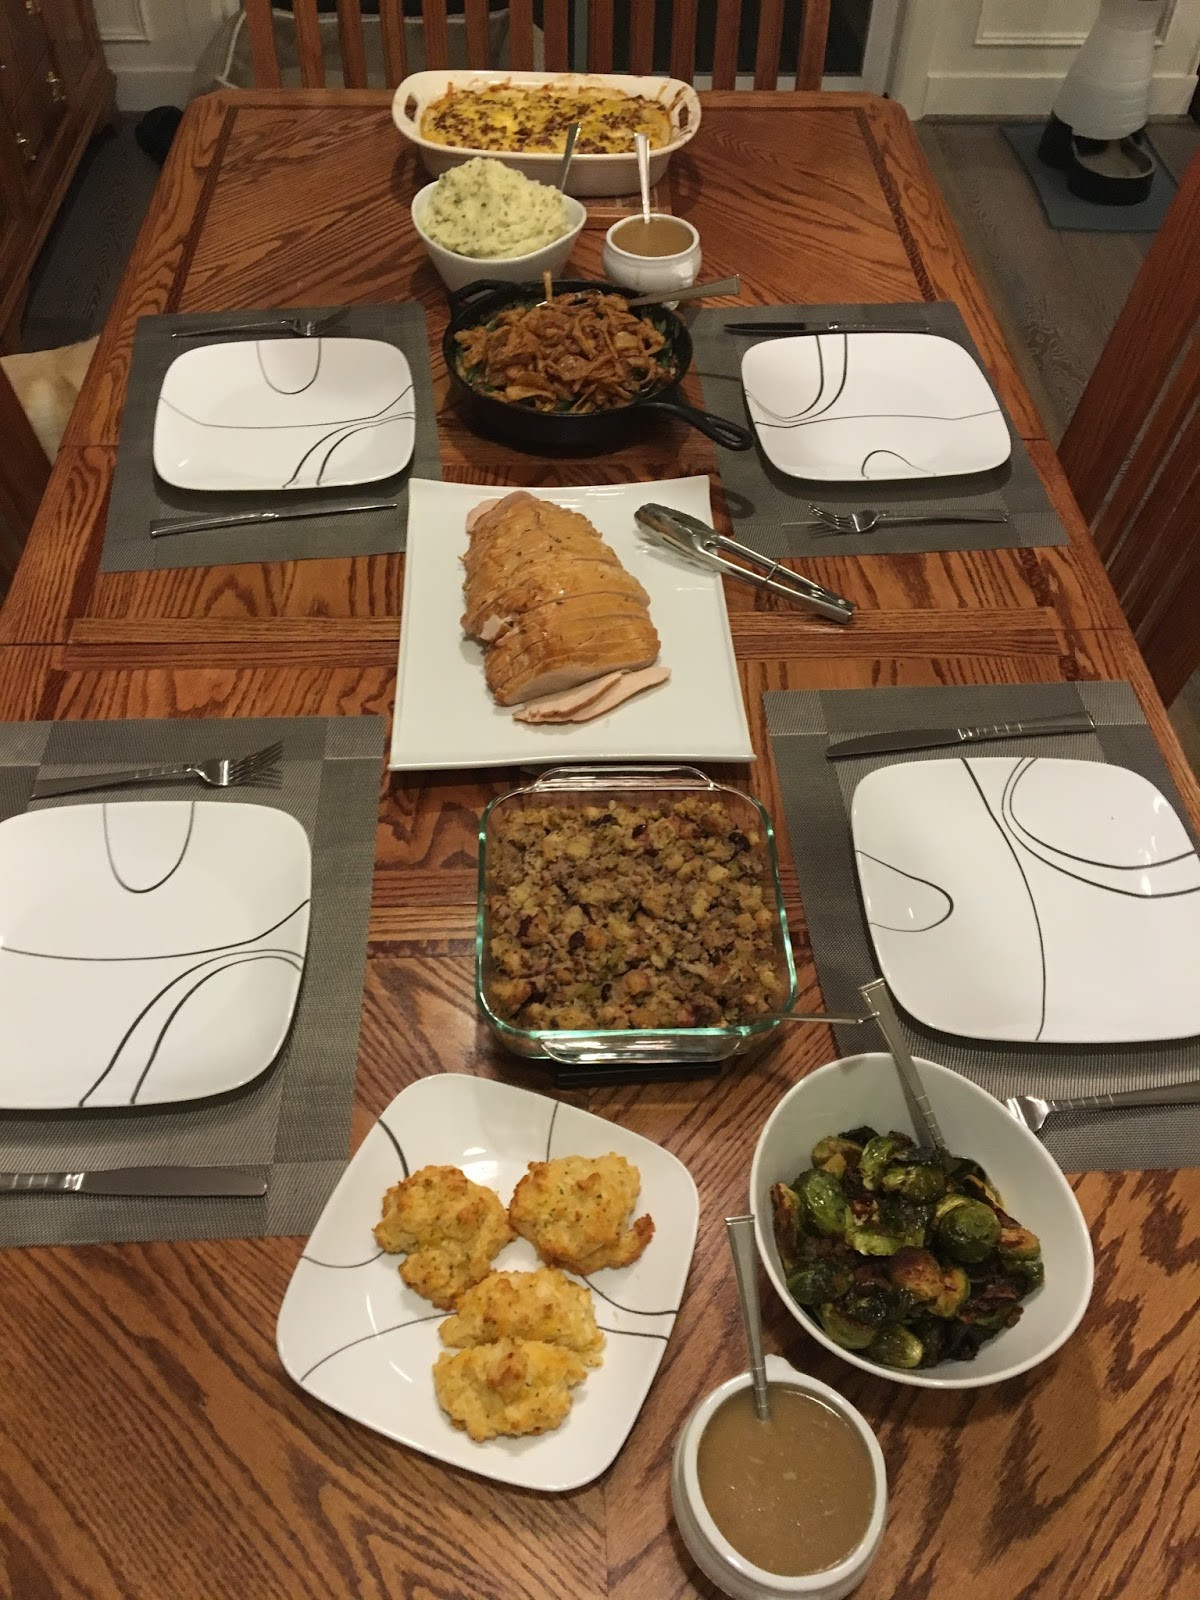 Costco Thanksgiving Dinner  93 Inch Bear Thanks to Costco for a traditional